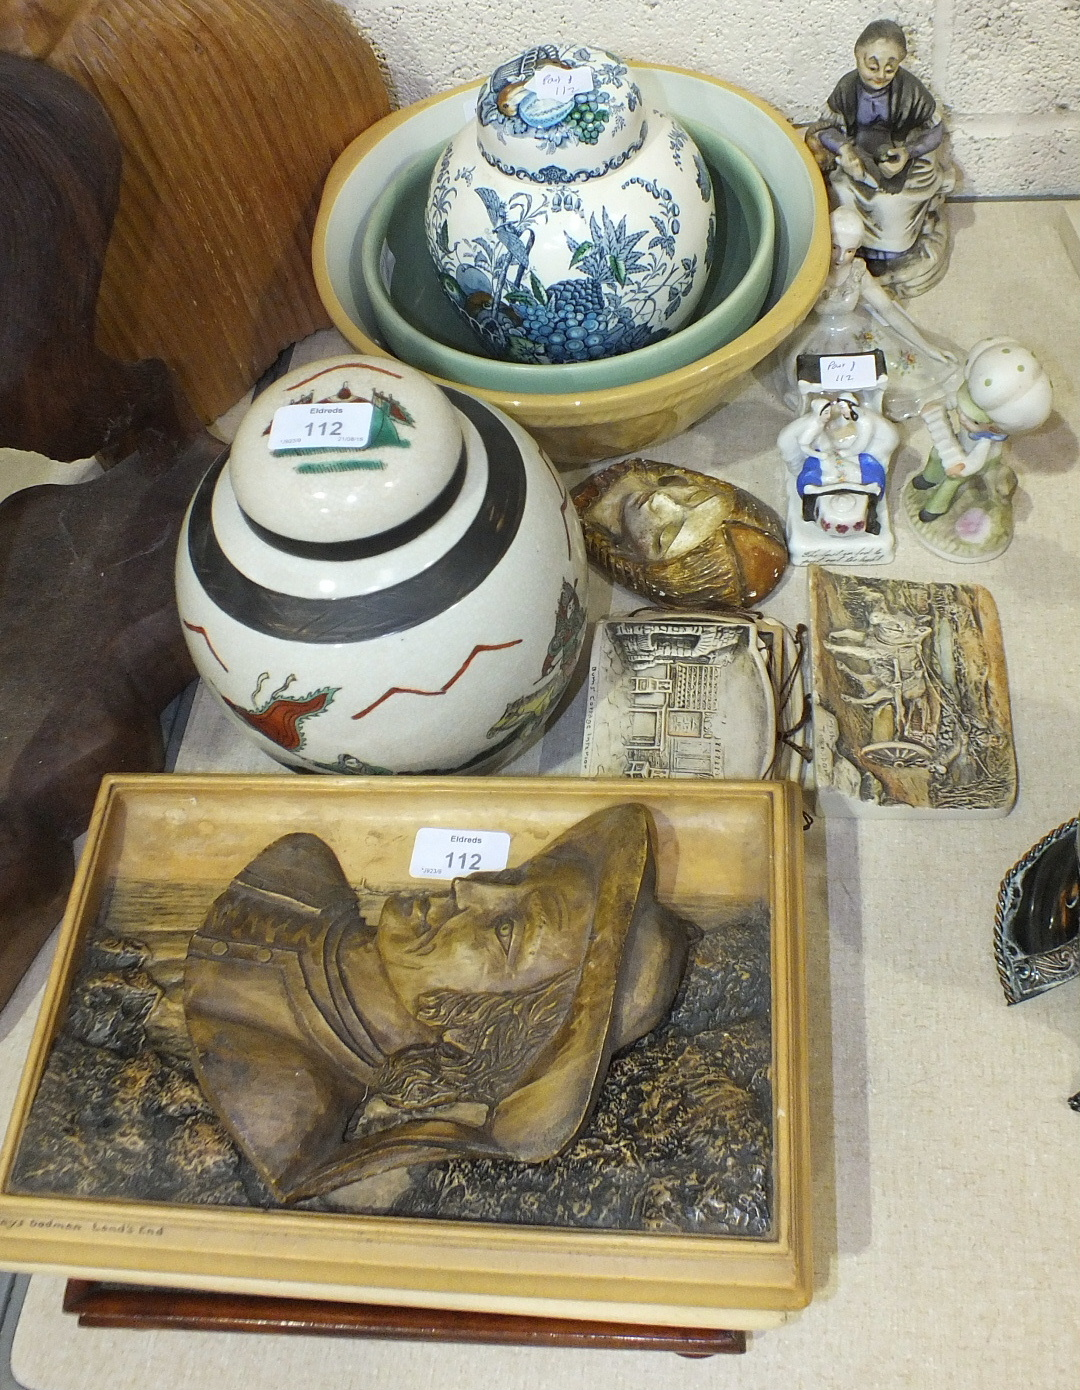 Lot 112 - A collection of six Osborne plaques, a Mason's 'Fruit Basket' decorated ginger jar and cover, a TG